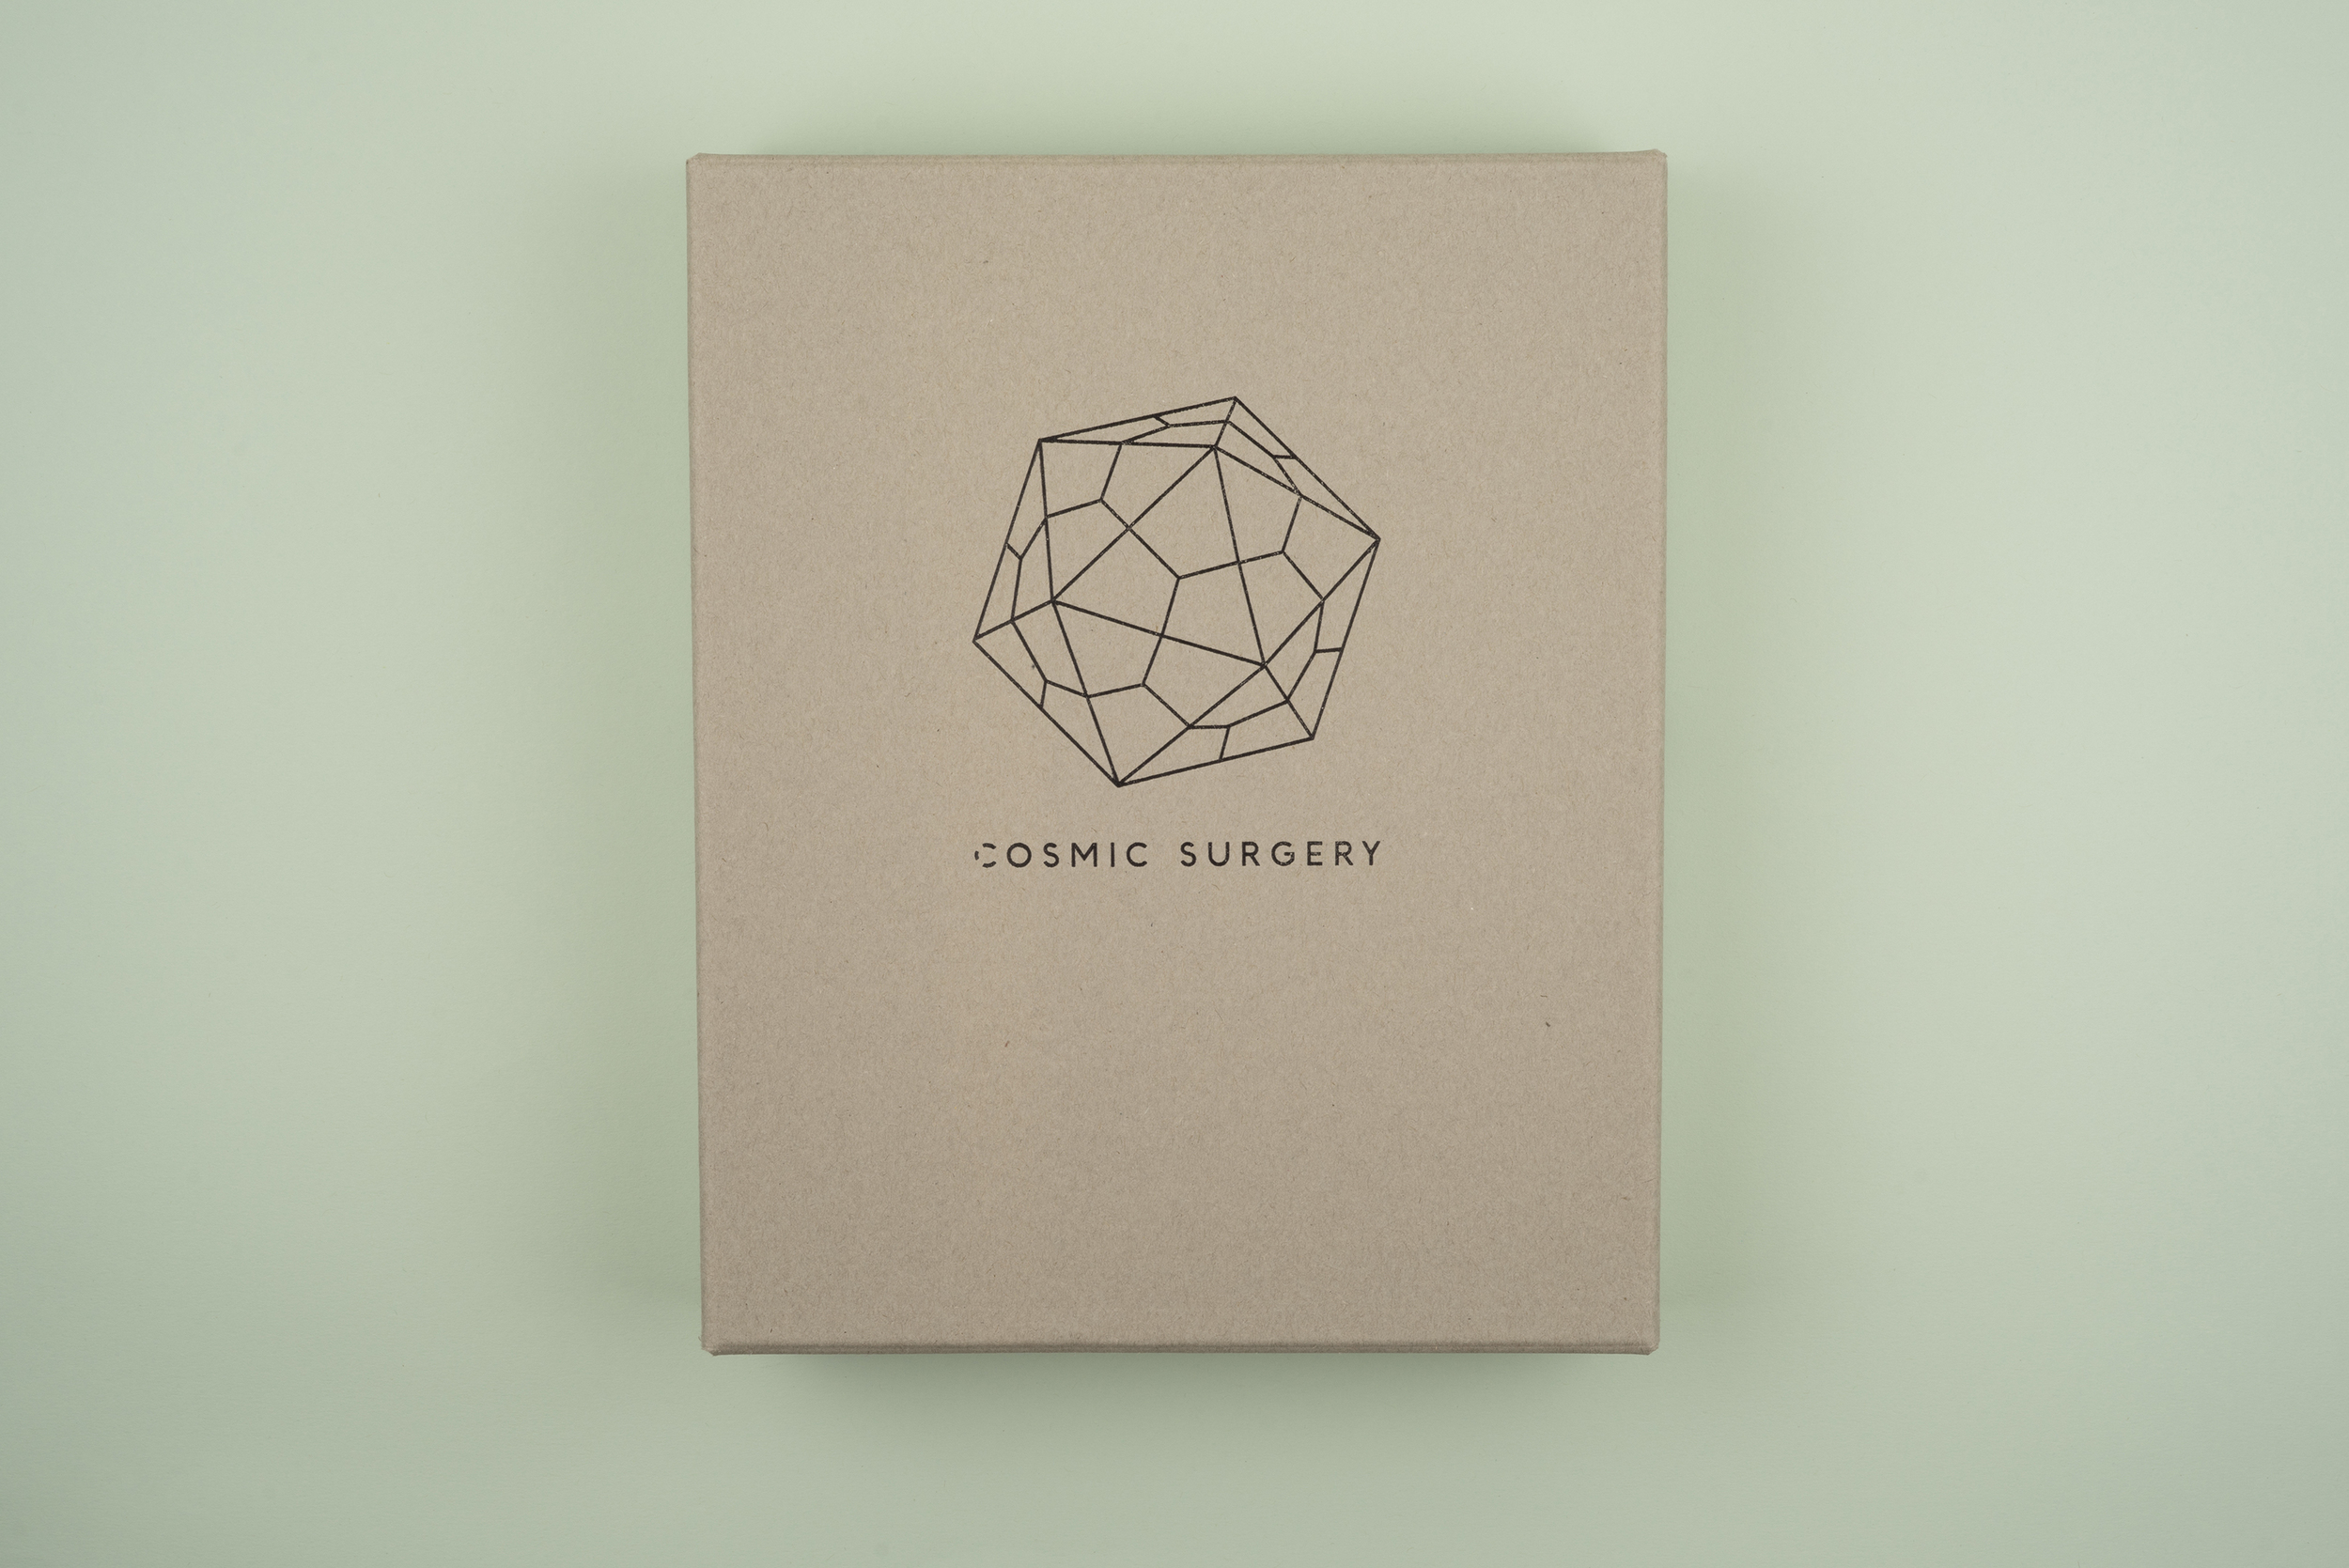 Cosmic Surgery Limited Edition Box